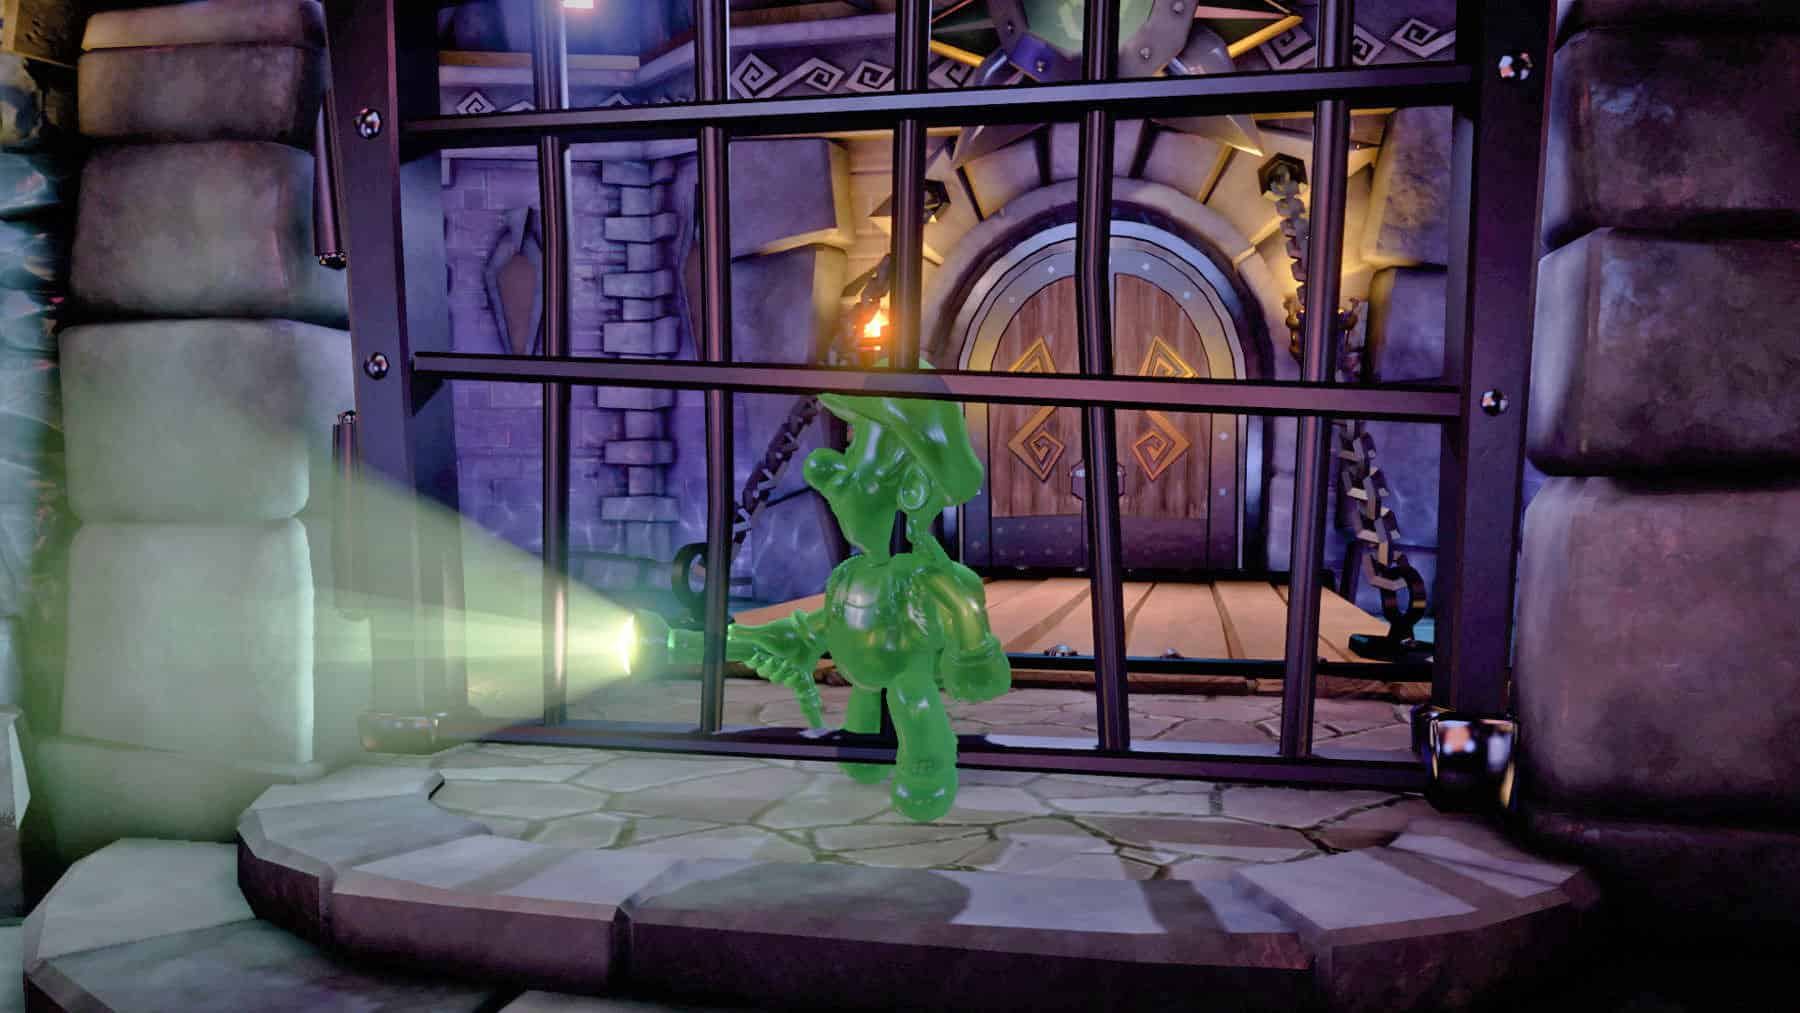 Luigi's gooey companion, Guigi returns in Luigi's Mansion 3